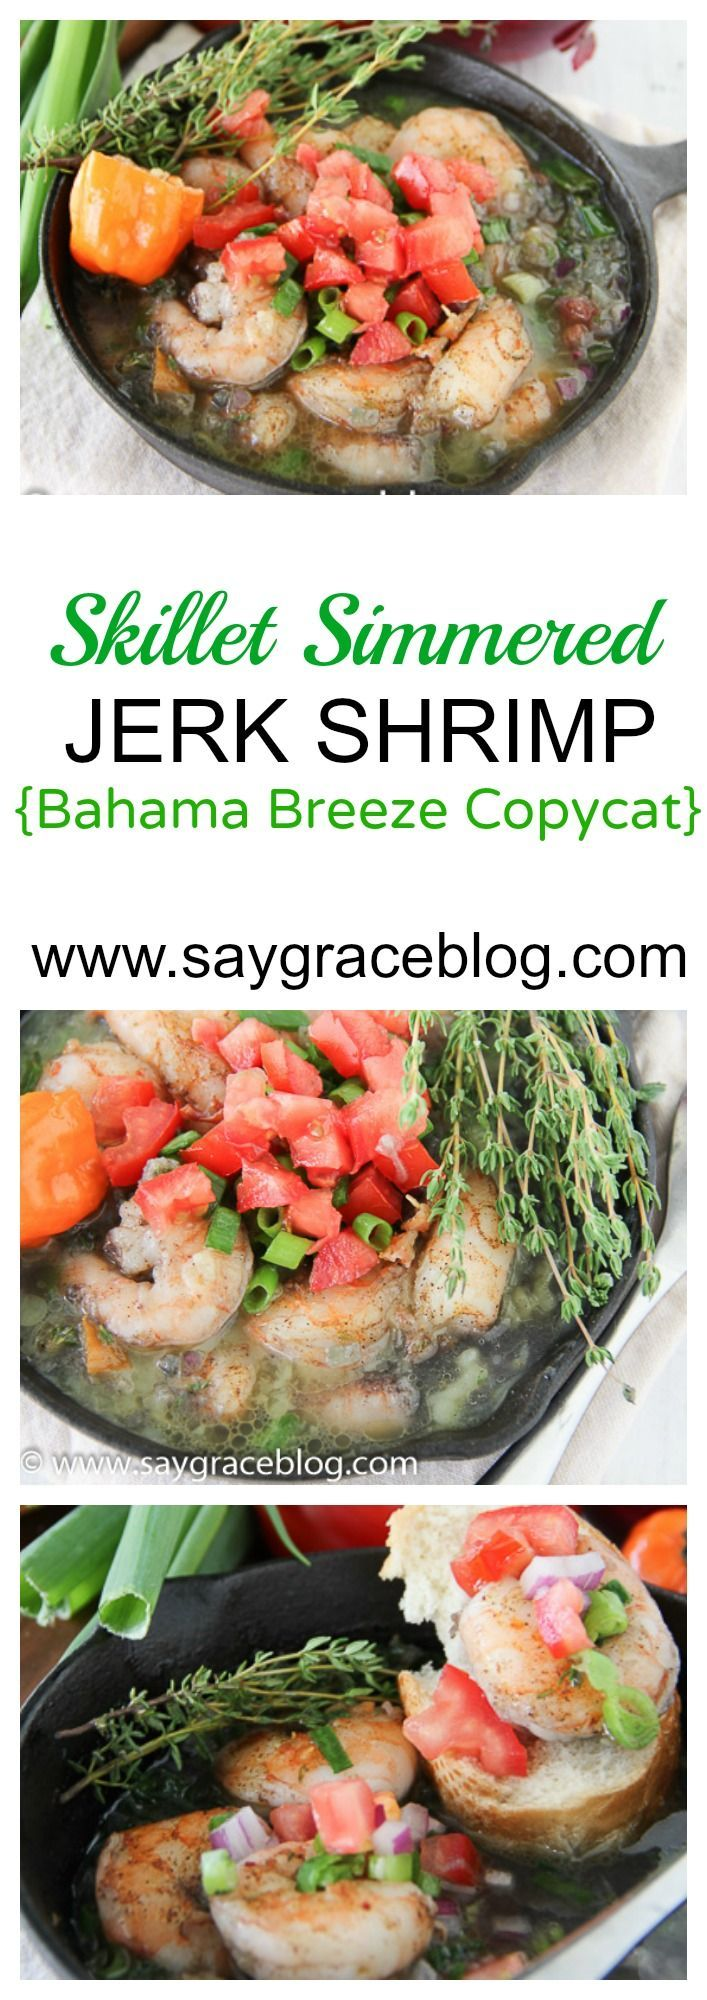 Skillet Simmered Jerk Shrimp (Bahama Breeze Copycat) #jerkshrimp